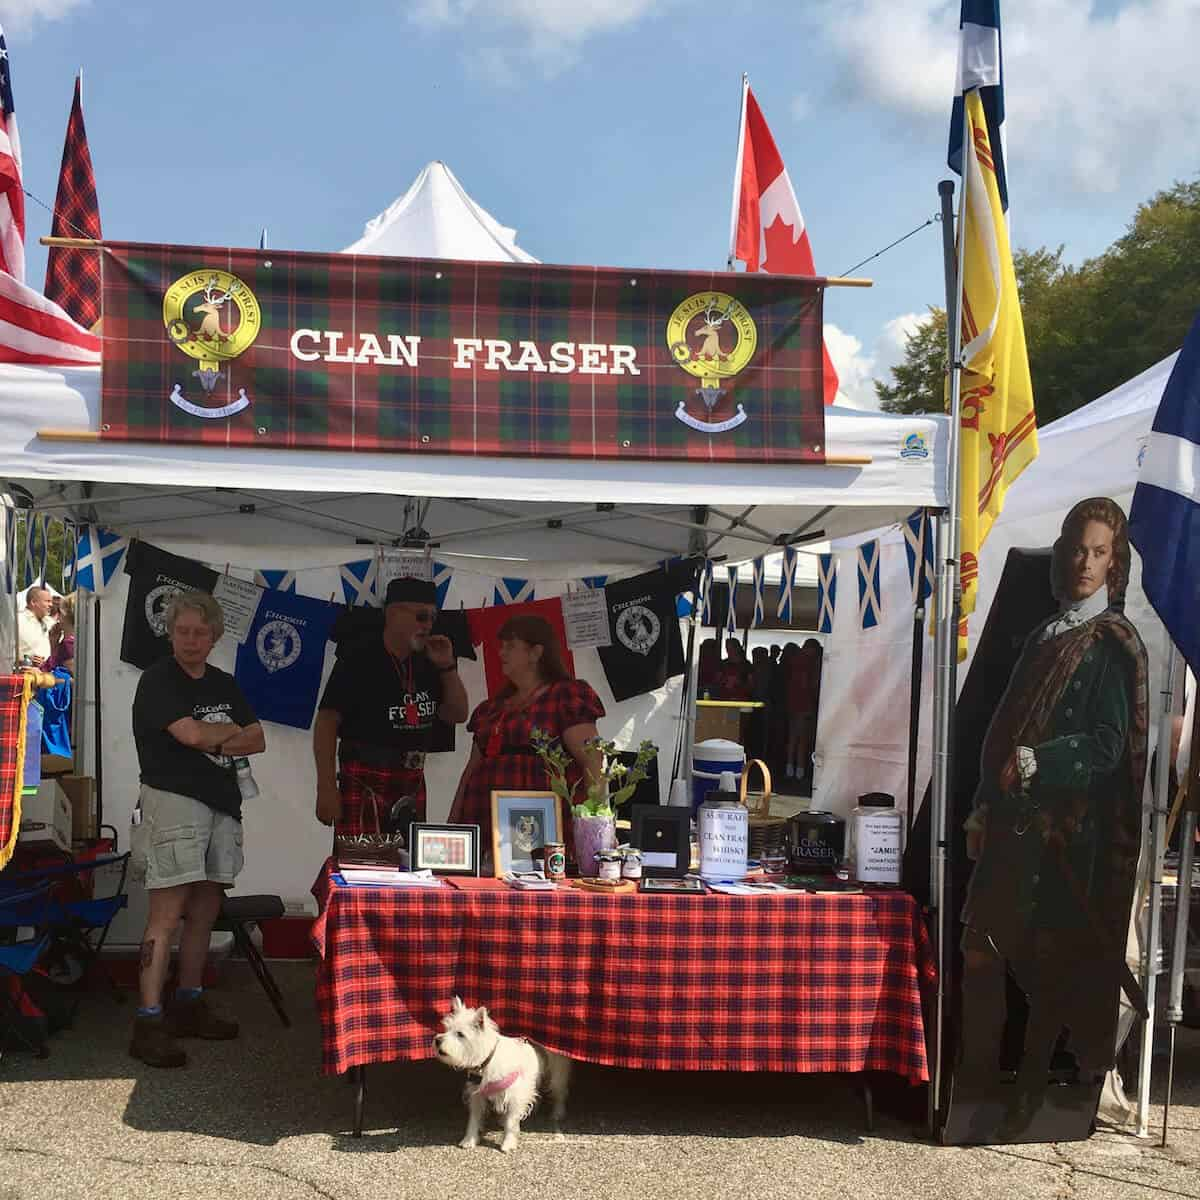 Clan Fraser tent at the New Hampshire Highland Games & Festival.